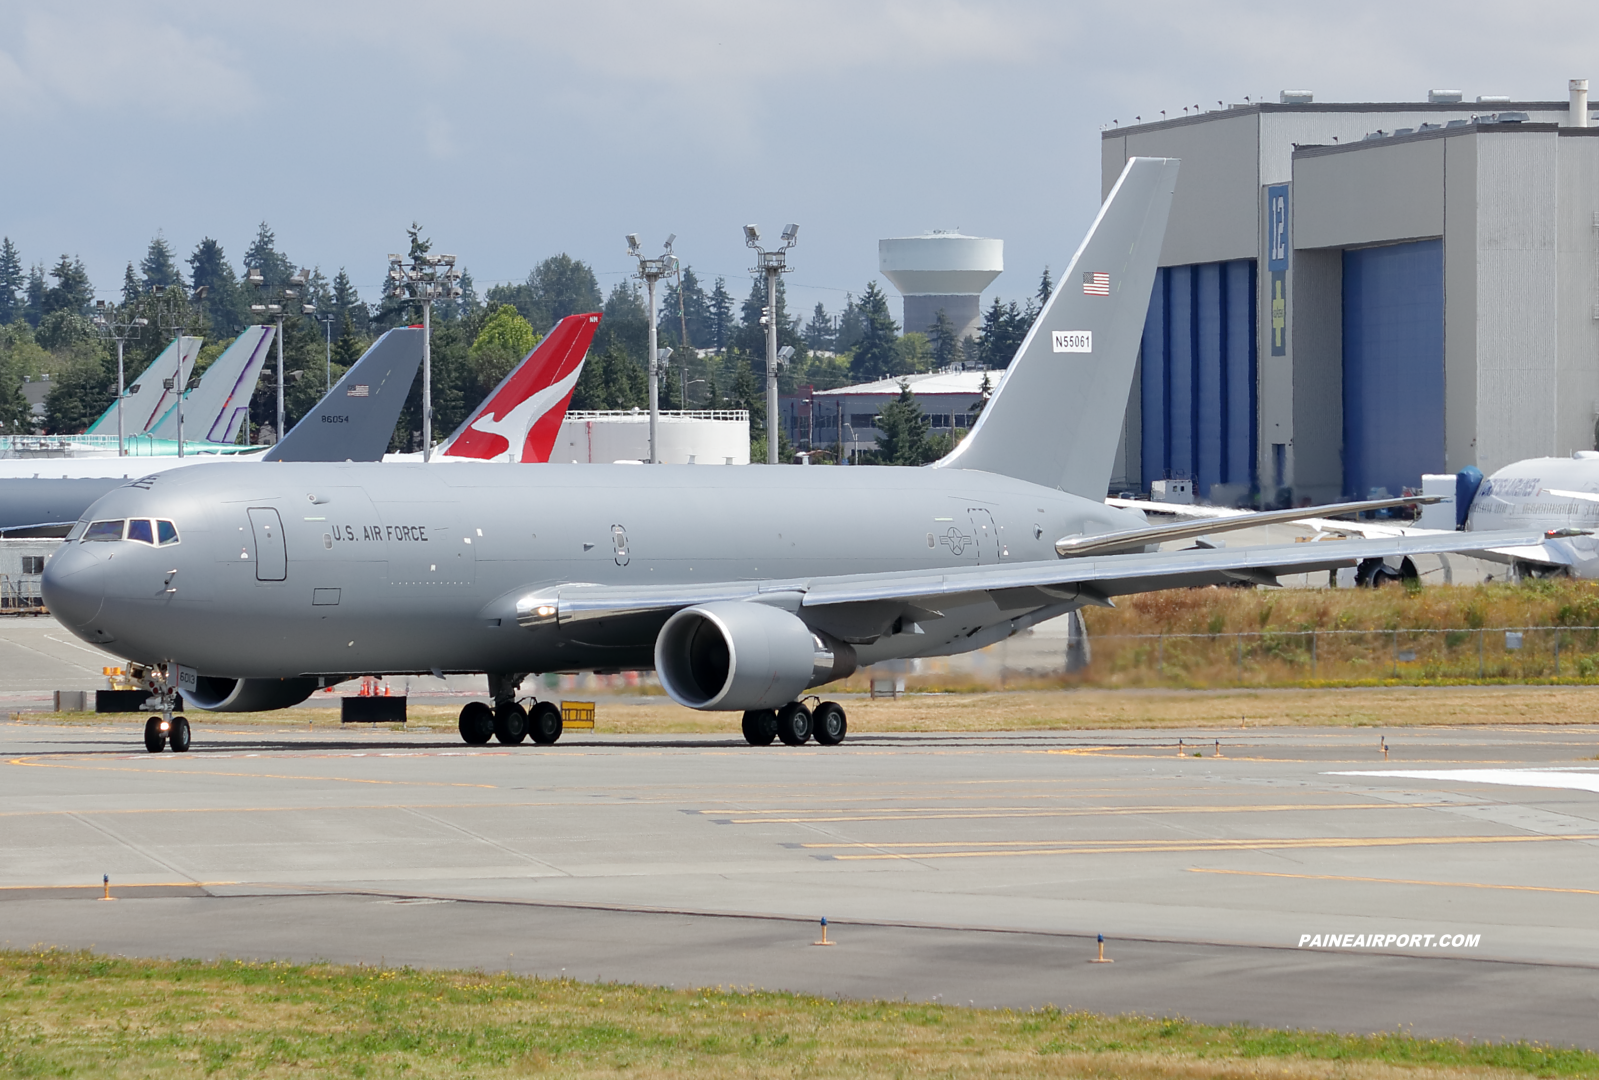 KC-46A 16-46013 at KPAE Paine Field